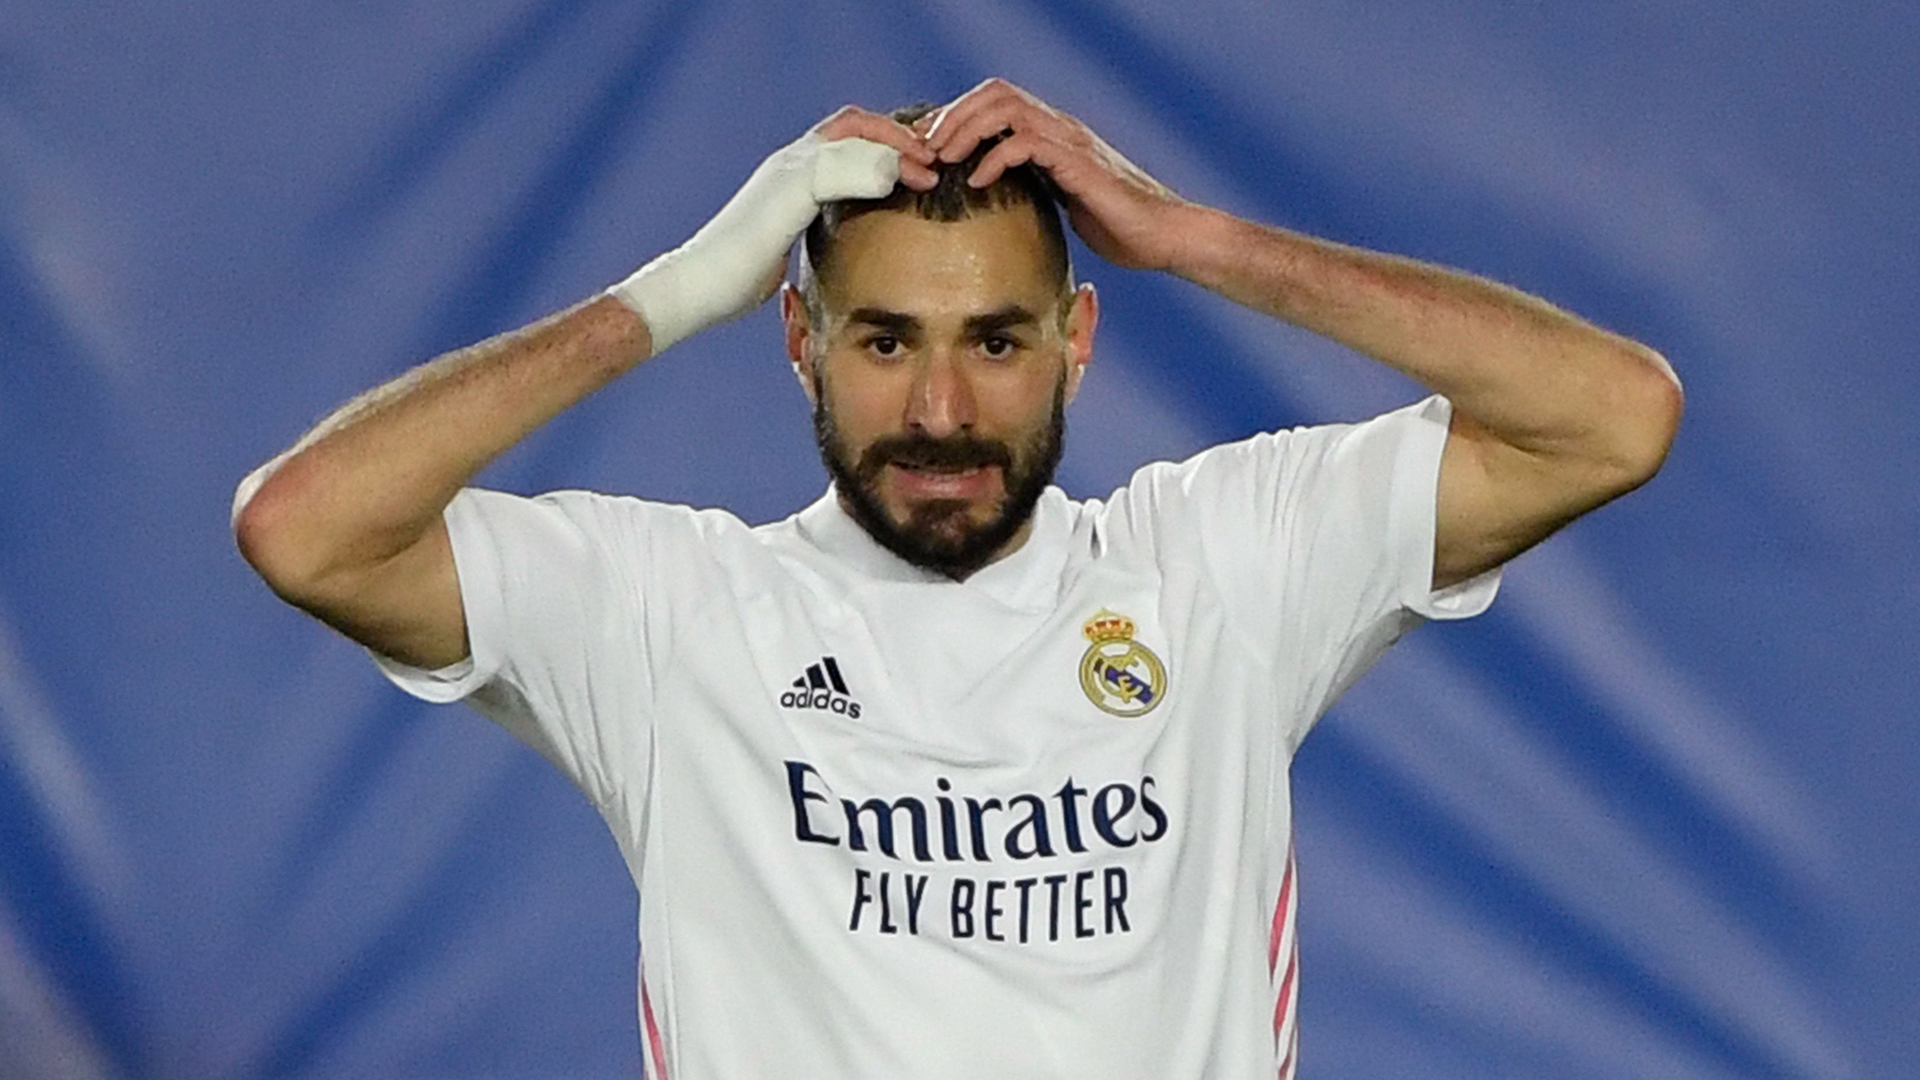 Real Madrid star Benzema to face trial over Valbuena sex tape case